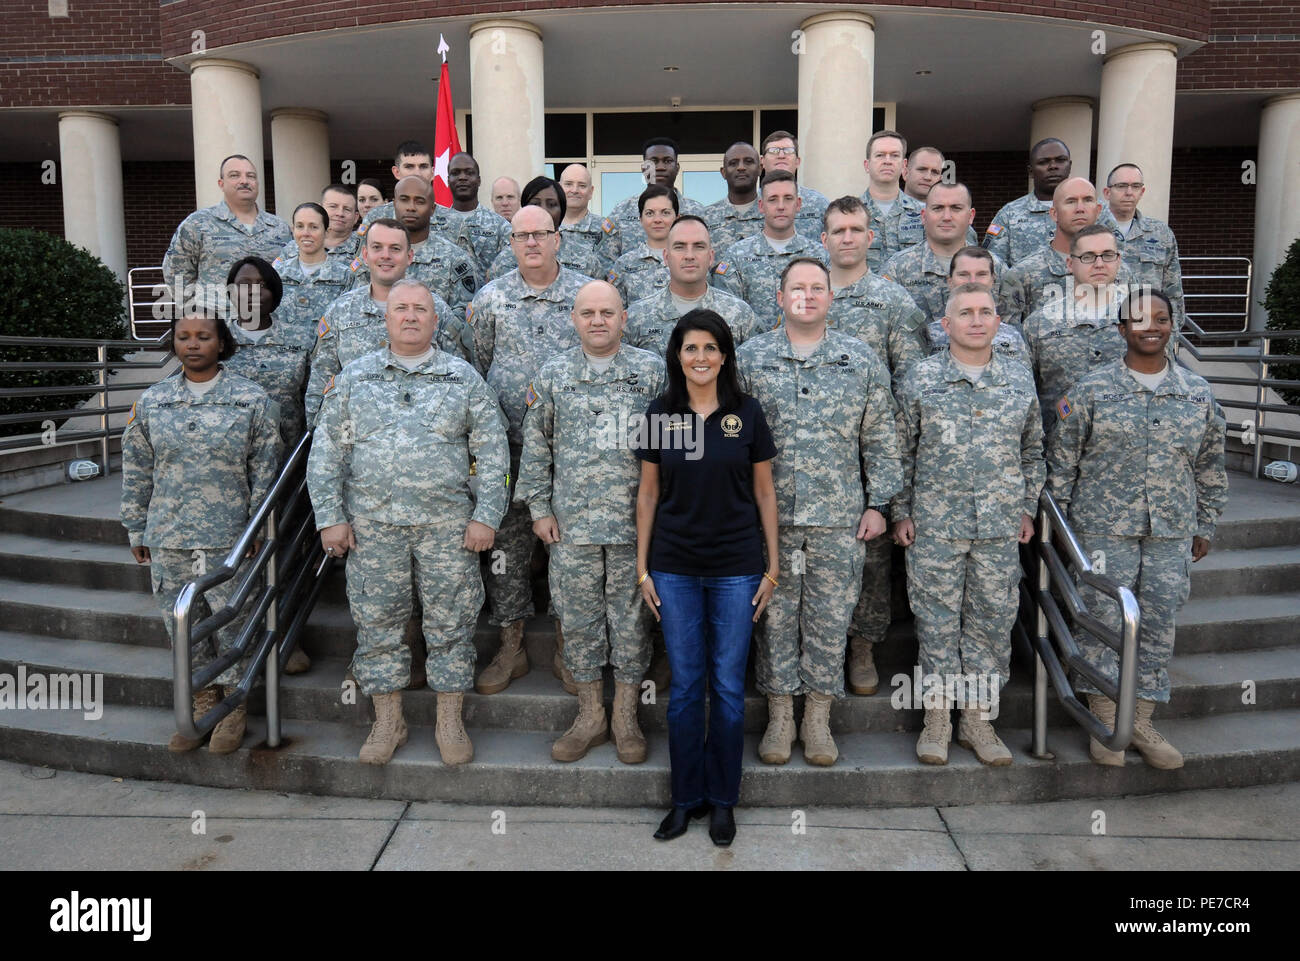 South Carolina Gov. Nikki Haley poses with South Carolina National Guard members during a visit to assess the National Guard response to severe flooding in support of civil authorities, National Guard Readiness Center, West Columbia, S.C., Oct. 14, 2015. (U.S. Army National Guard photo by Sgt. 1st Class Jim Greenhill) (Released) - Stock Image